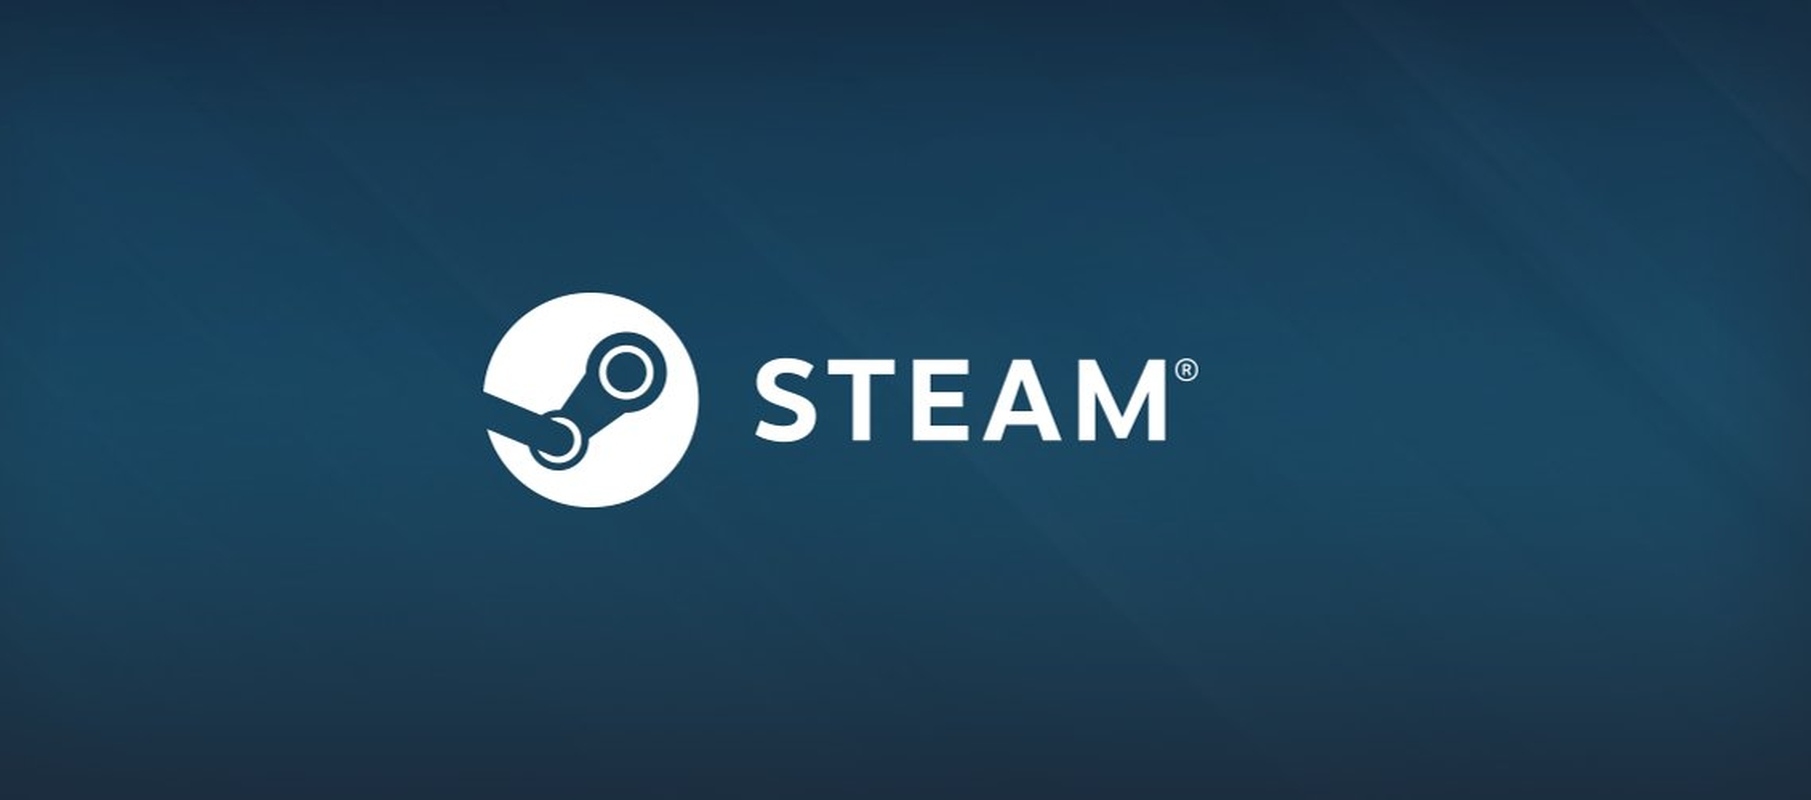 Valve Releases New Steam Update, Fixing Several Issues With The Steam Client